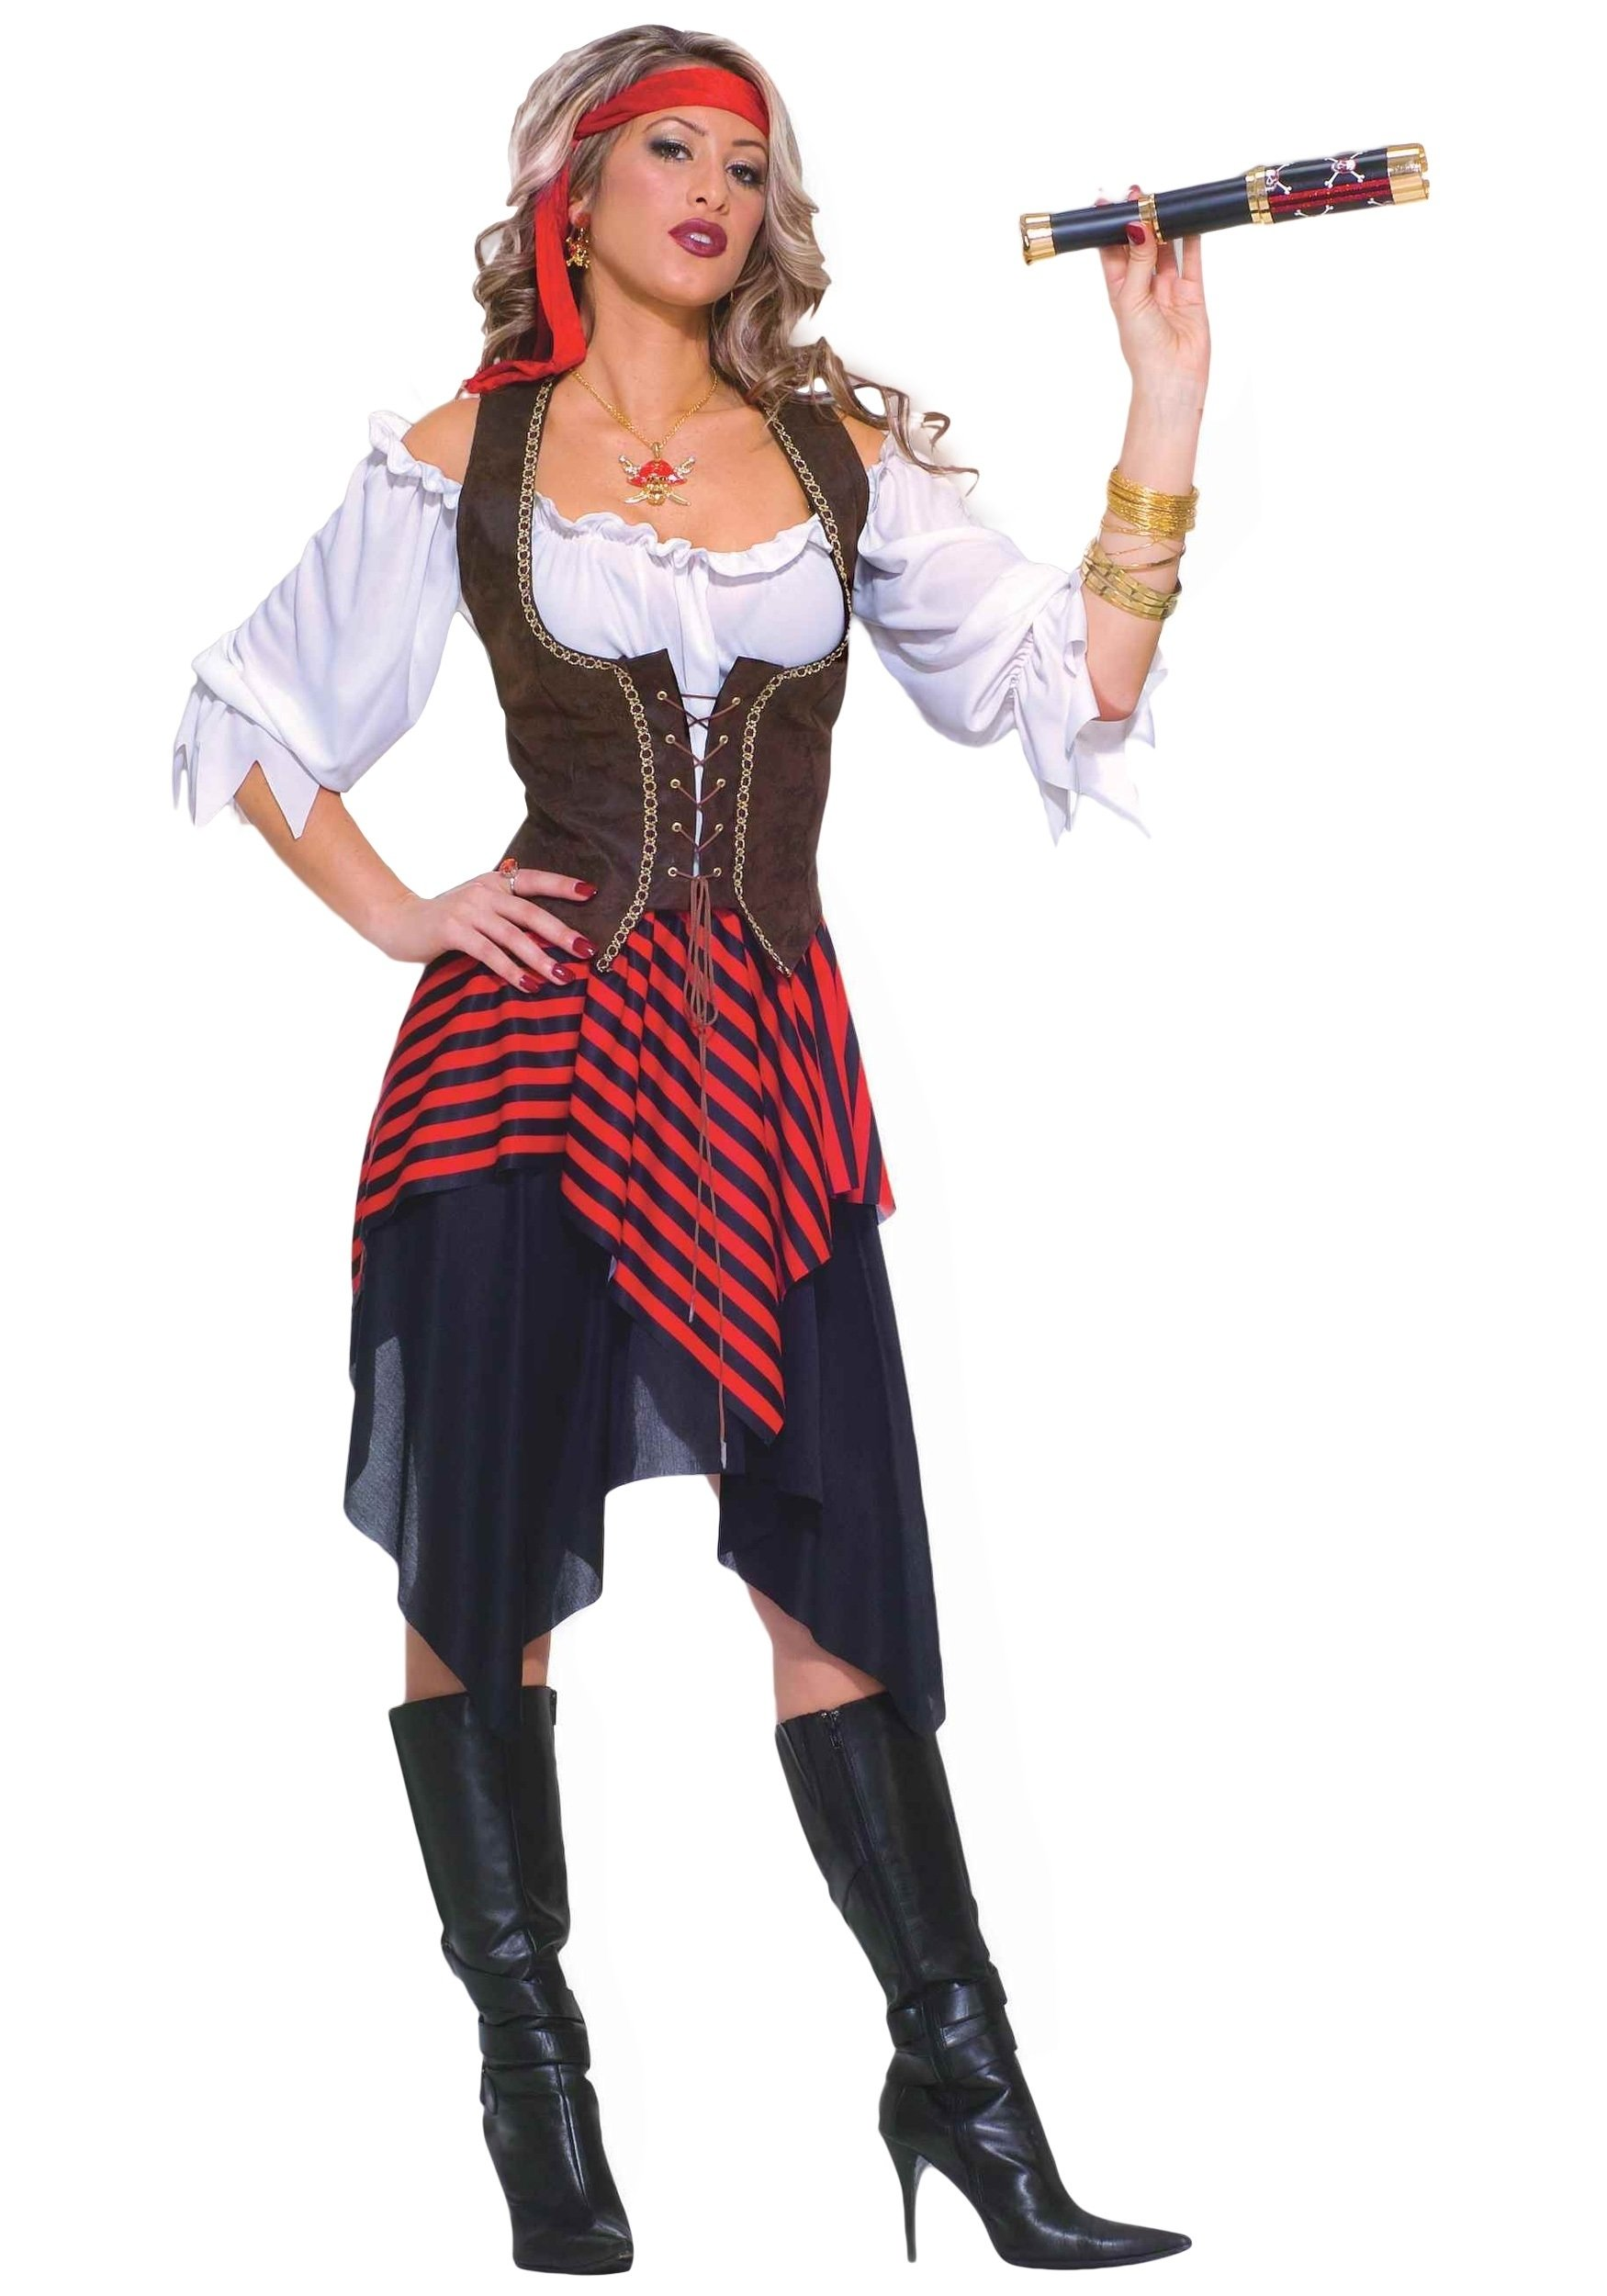 10 Fabulous Best Costume Ideas For Women sweet buccaneer costume 3